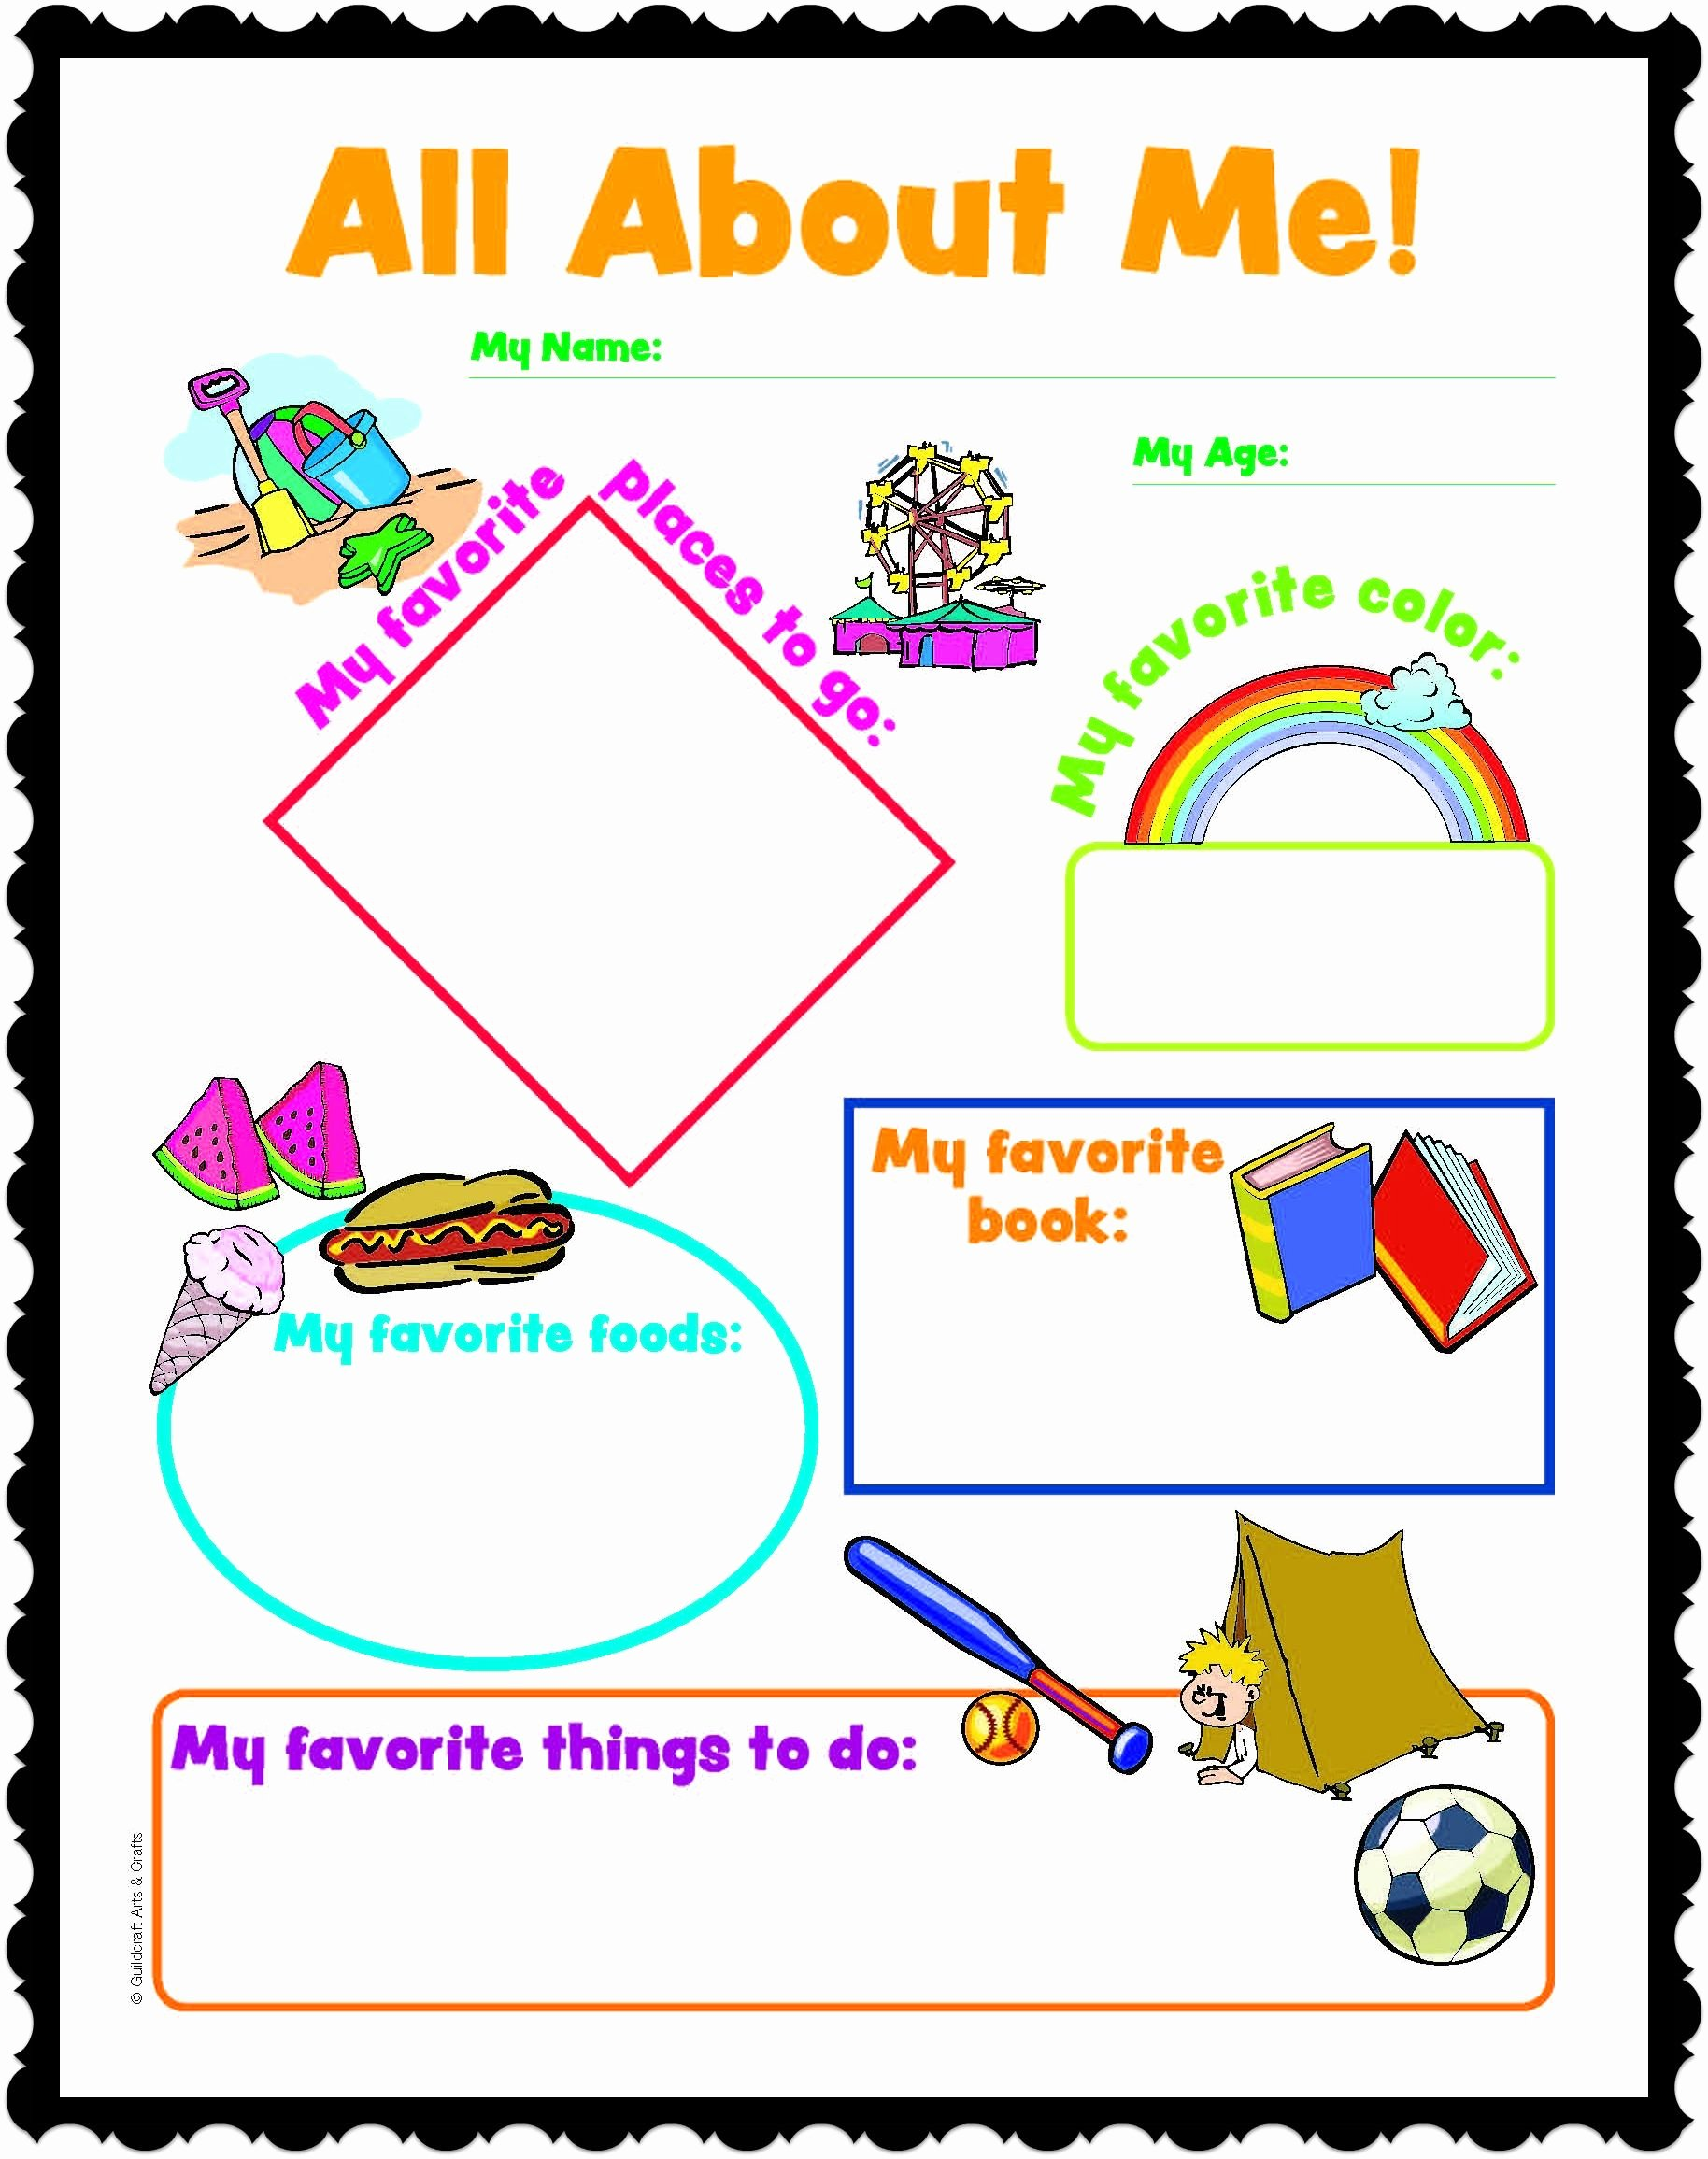 All About Me Printable Worksheet Fresh All About Me Printables